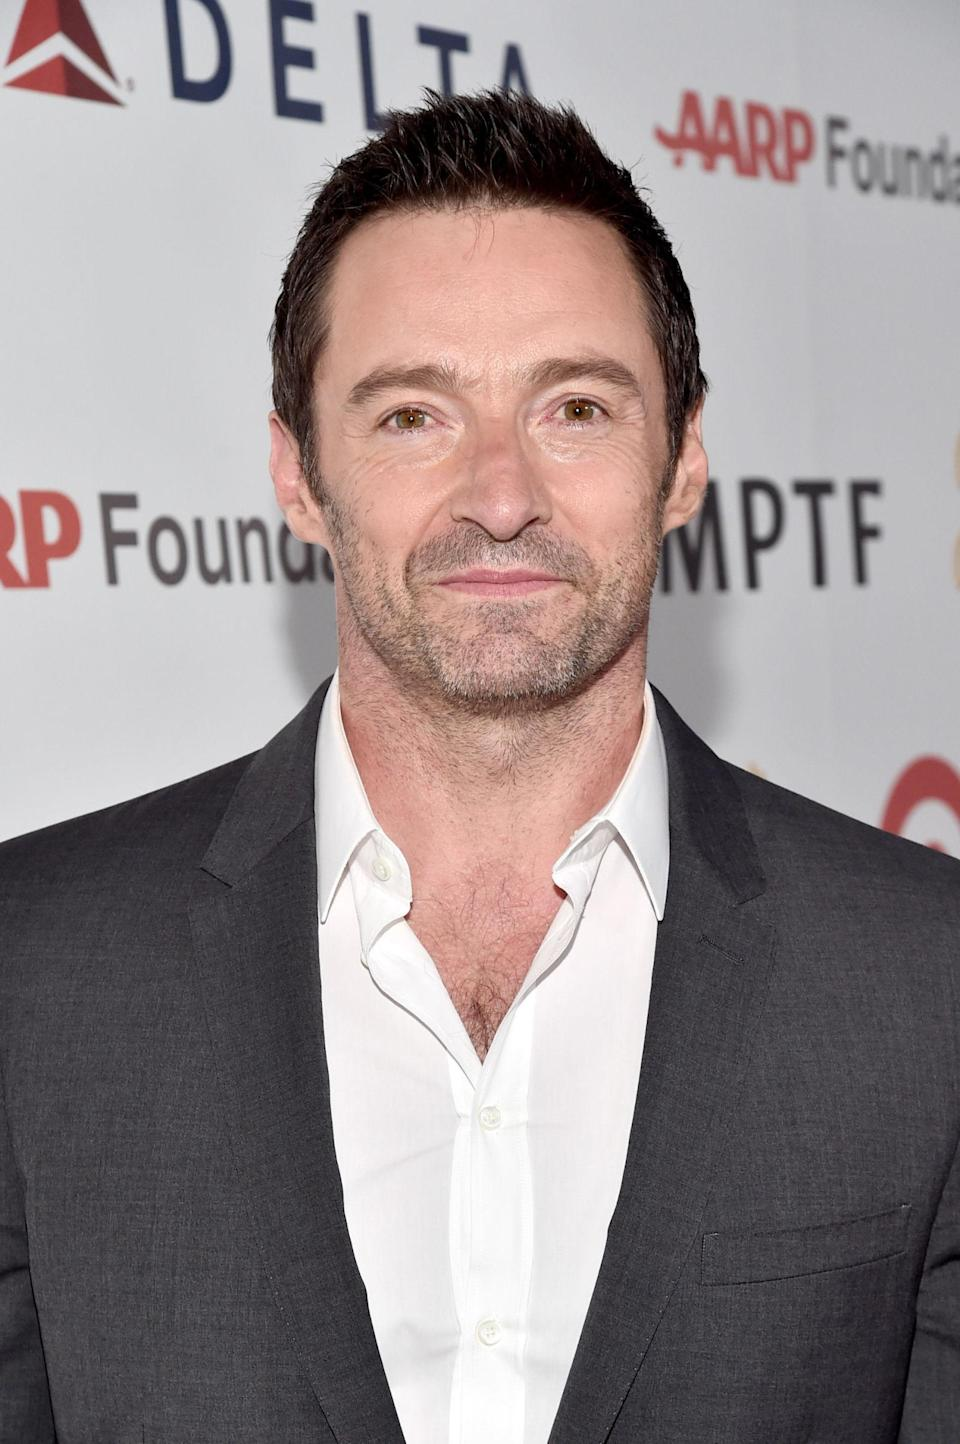 """<p>Jackman's Instagram is one long ode to the cheat meal. He has indulged in a <a href=""""https://www.instagram.com/p/1dHv-CihLu/"""" rel=""""nofollow noopener"""" target=""""_blank"""" data-ylk=""""slk:burger and fries"""" class=""""link rapid-noclick-resp"""">burger and fries</a>, <a href=""""https://www.instagram.com/p/8yDdpUihGB/"""" rel=""""nofollow noopener"""" target=""""_blank"""" data-ylk=""""slk:a massive portion of ribs"""" class=""""link rapid-noclick-resp"""">a massive portion of ribs</a><span>, <a href=""""https://www.instagram.com/p/9B9zC6ChDn/"""" rel=""""nofollow noopener"""" target=""""_blank"""" data-ylk=""""slk:an entire plate of cookies"""" class=""""link rapid-noclick-resp"""">an entire plate of cookies</a>, a <a href=""""https://www.instagram.com/p/z44UYhChAC/?modal=true"""" rel=""""nofollow noopener"""" target=""""_blank"""" data-ylk=""""slk:package of Tim Tam cookies"""" class=""""link rapid-noclick-resp"""">package of Tim Tam cookies</a>, and an elaborate <a href=""""https://www.instagram.com/p/8GdWcwihA6/"""" rel=""""nofollow noopener"""" target=""""_blank"""" data-ylk=""""slk:breakfast spread"""" class=""""link rapid-noclick-resp"""">breakfast spread</a> including bacon and pancakes. </span></p>"""